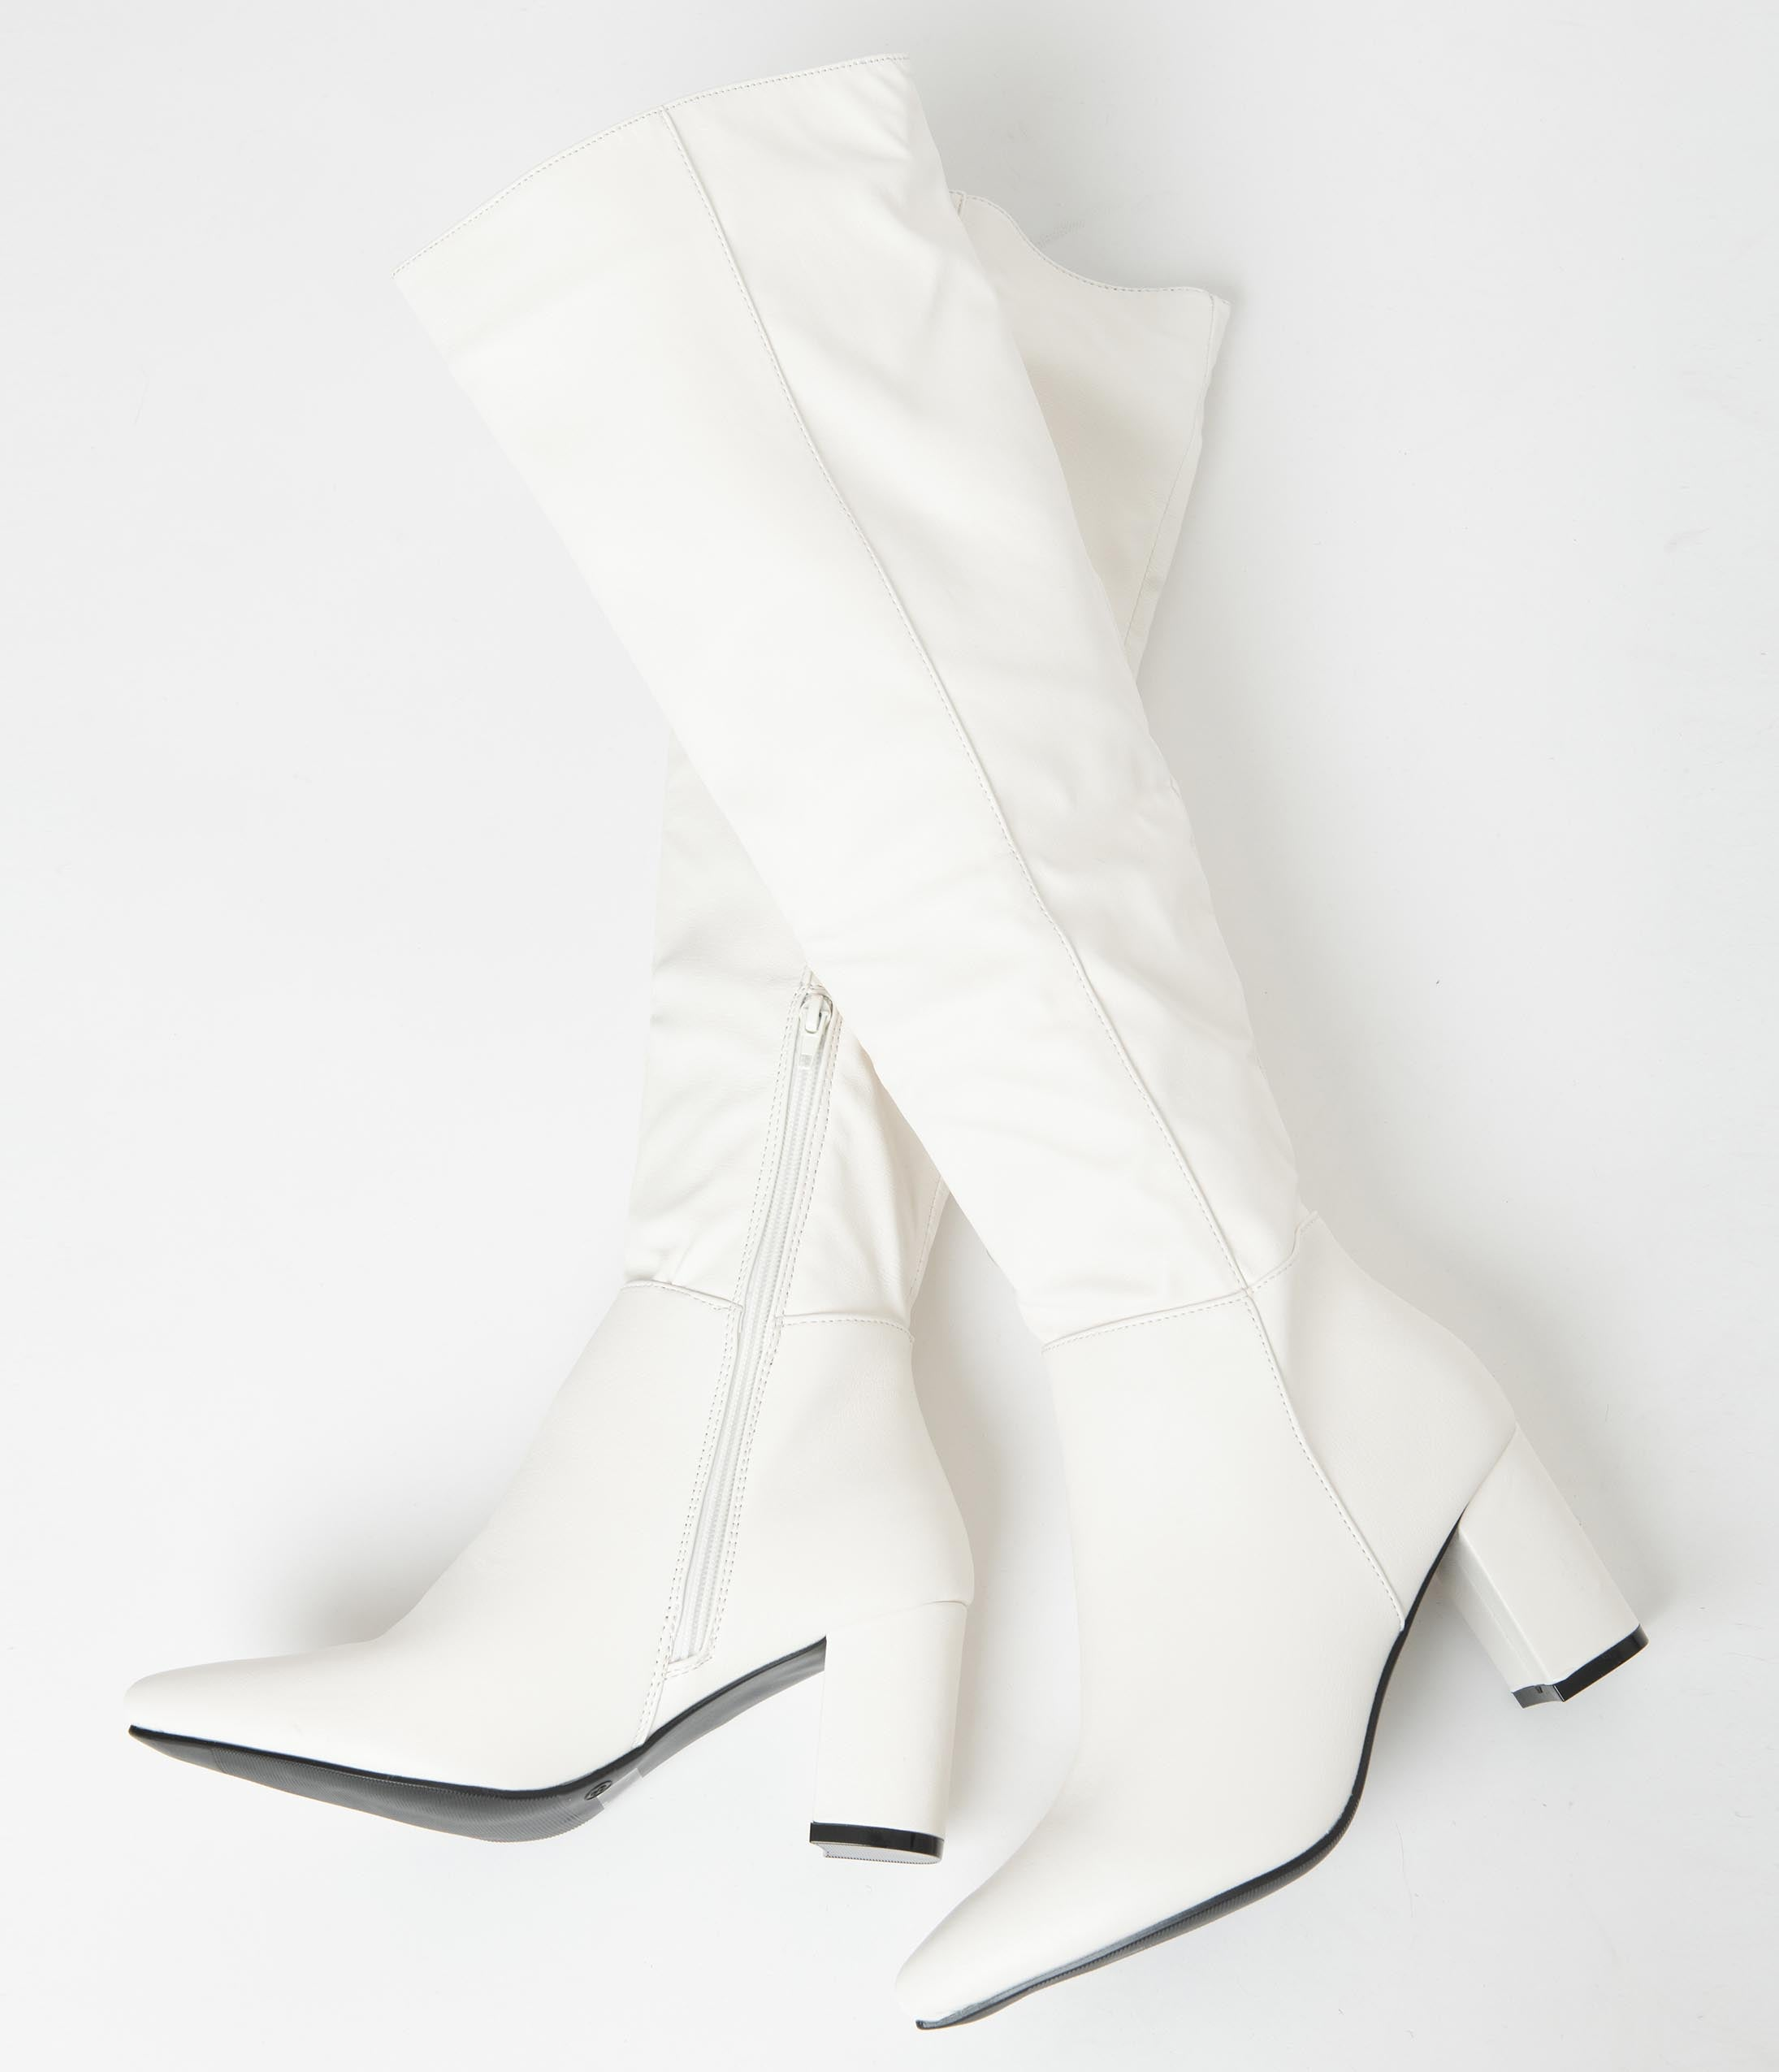 Vintage Boots, Retro Boots Retro Style White Leatherette Knee High Boots $68.00 AT vintagedancer.com